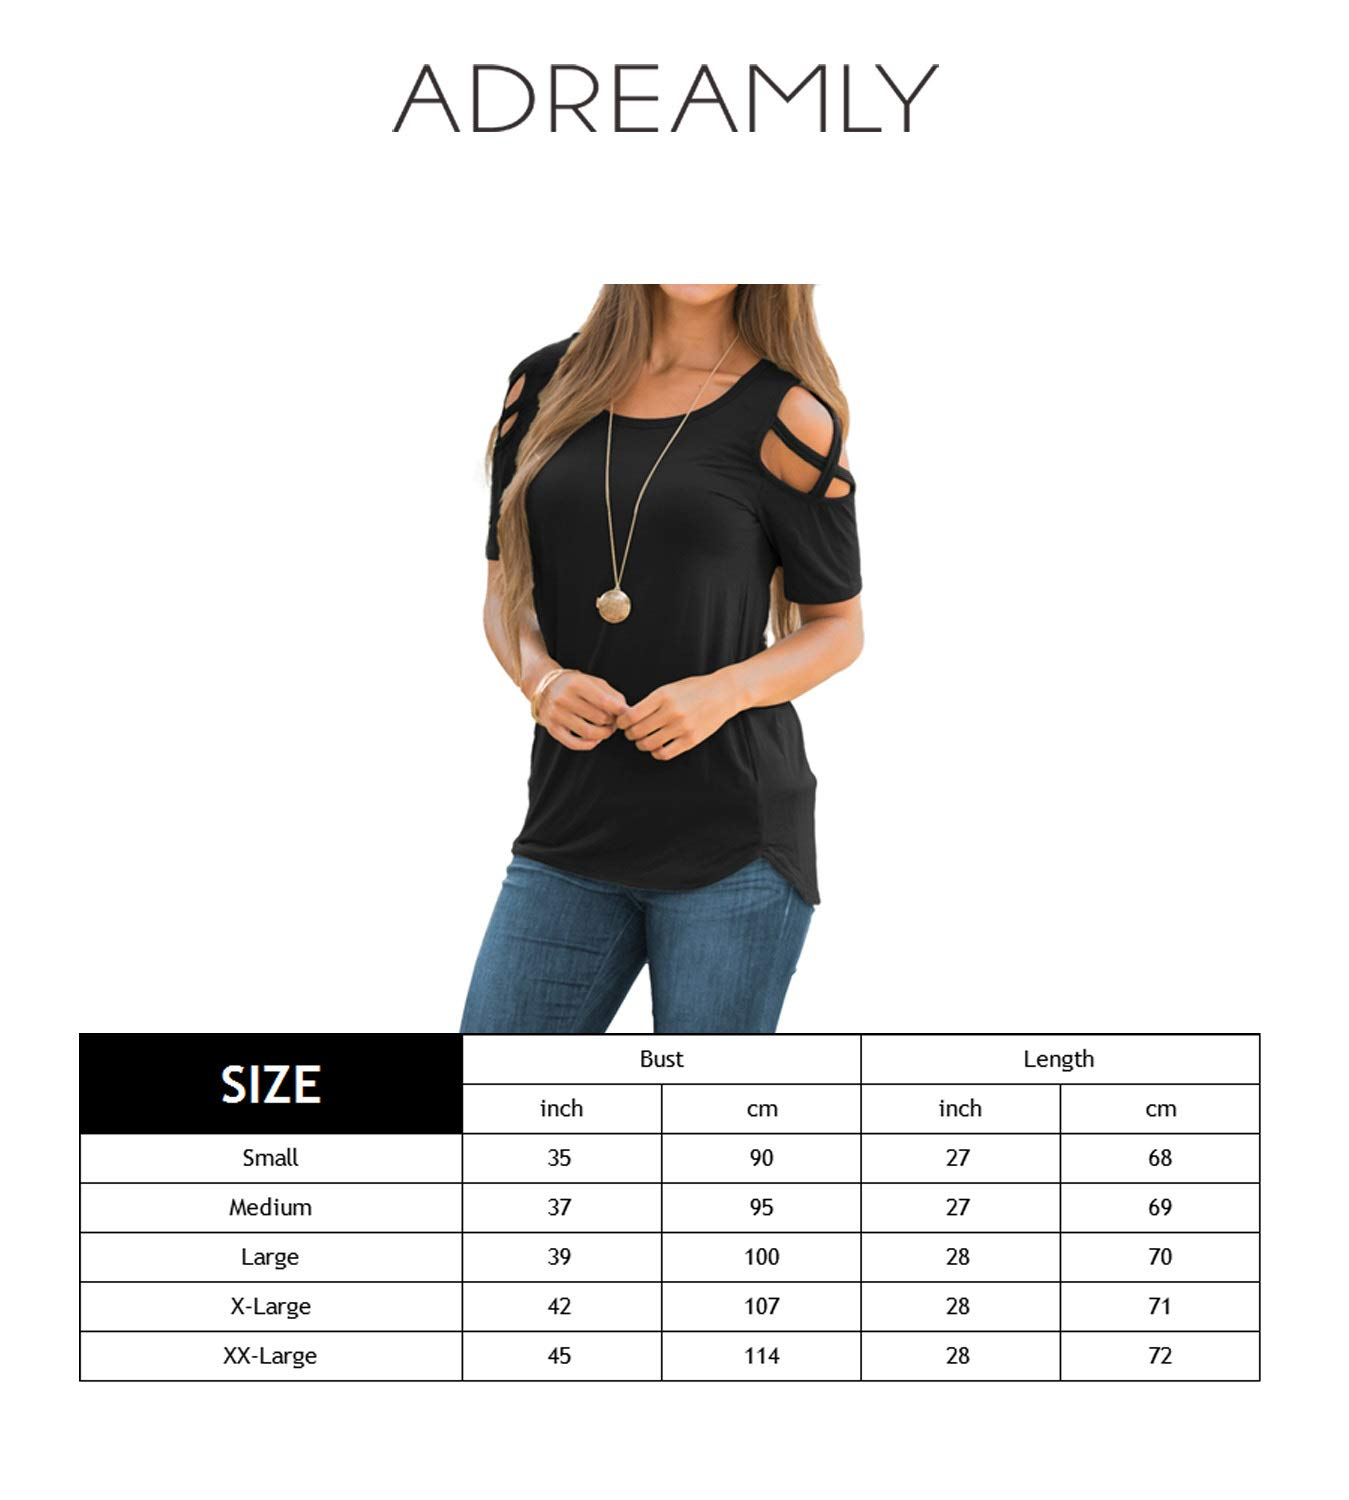 Adreamly Women's Casual Summer Short Sleeve Loose Strappy Cold Shoulder Tops Basic T Shirts Blouses Black Medium by Adreamly (Image #3)